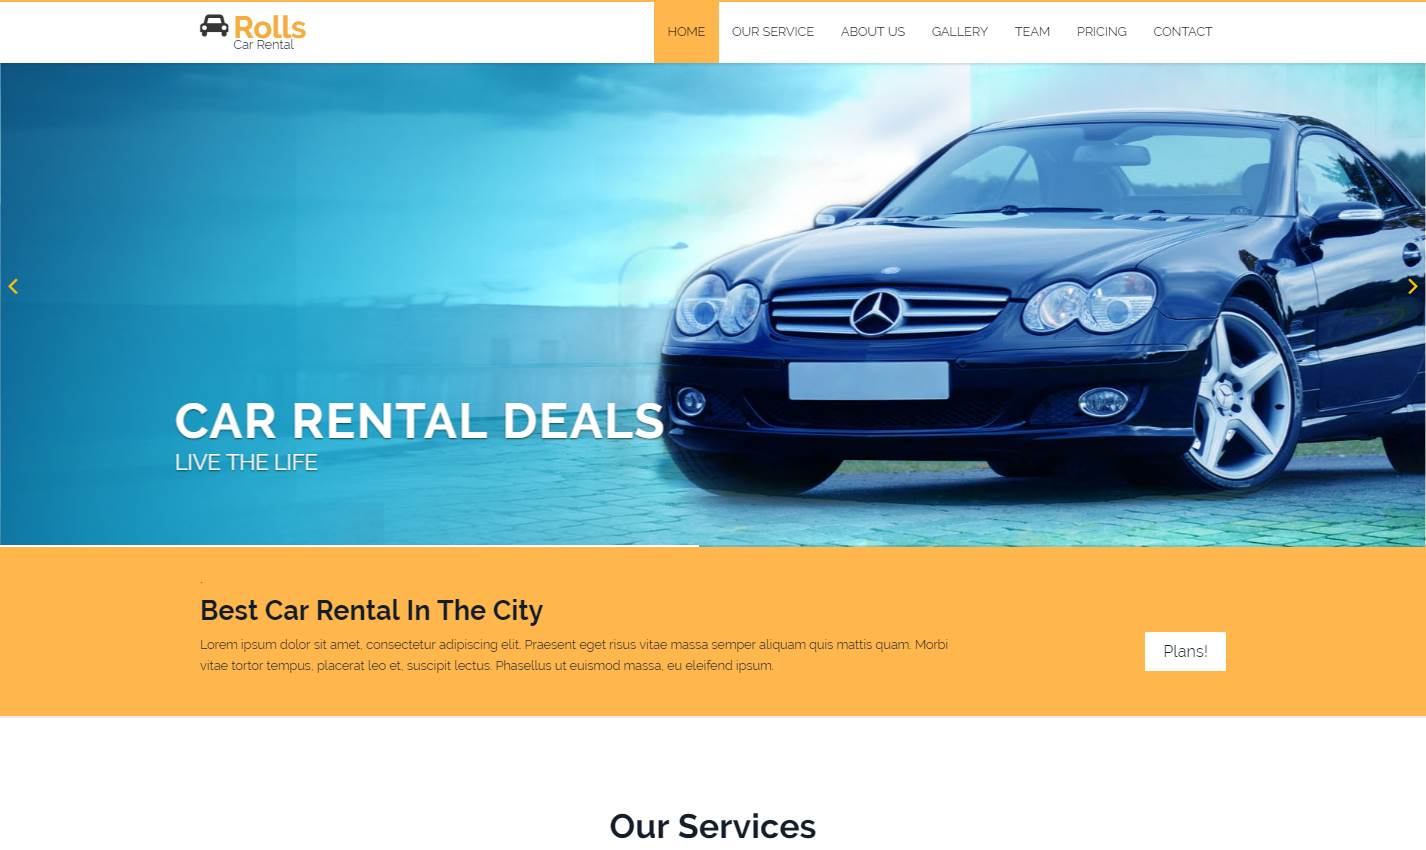 Rolls Car: A Car Rental Bootstrap Template